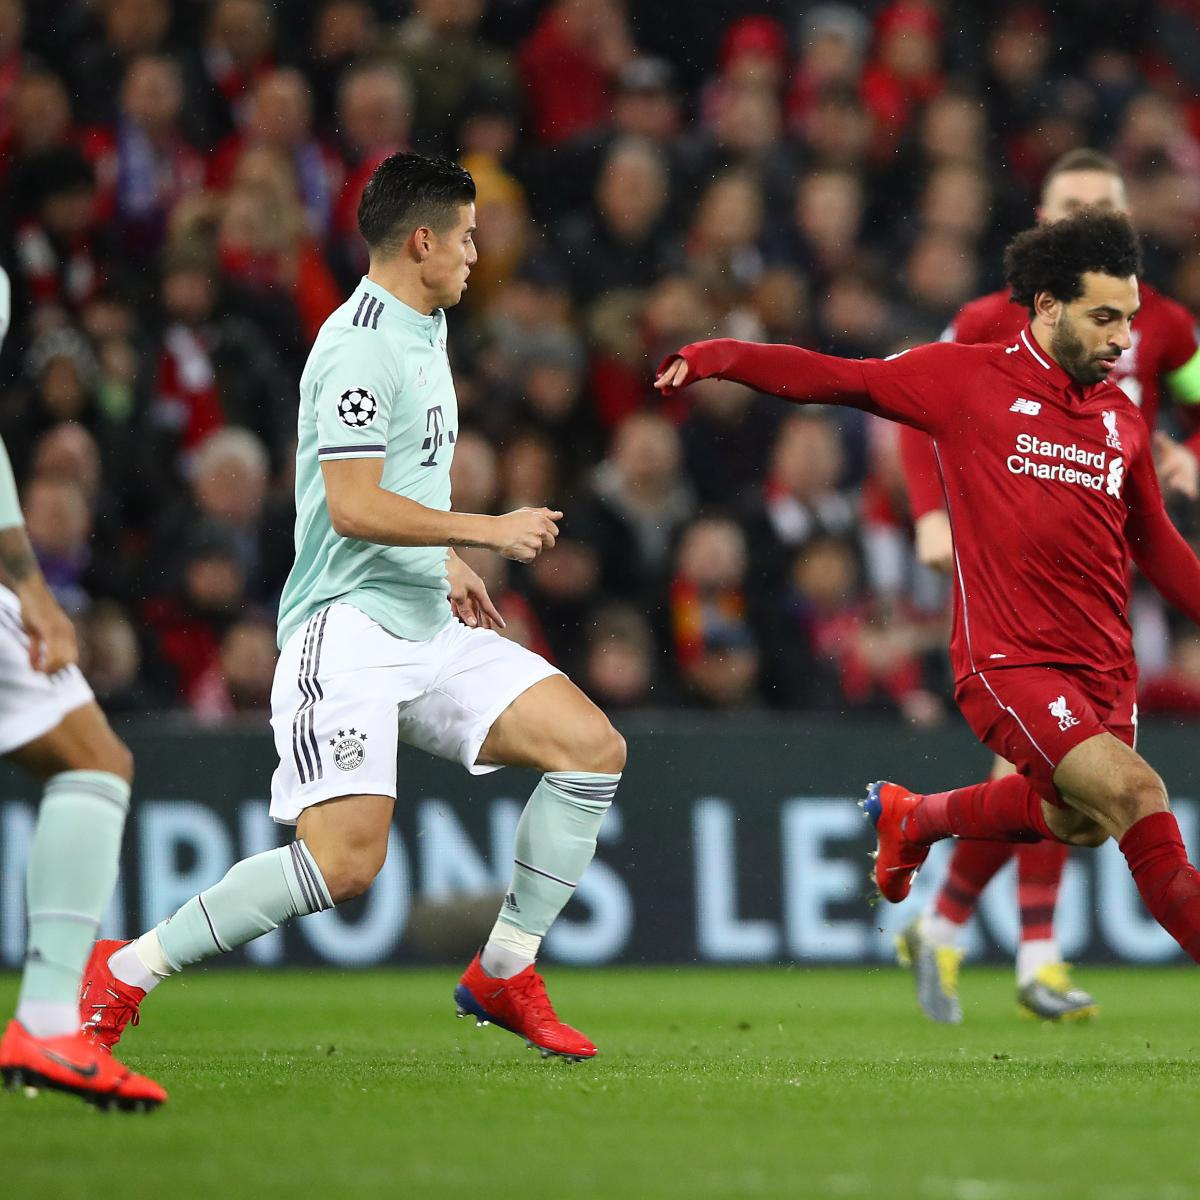 Uefa Champions League Round Of: Champions League 2019: Wednesday Live Stream, Odds For